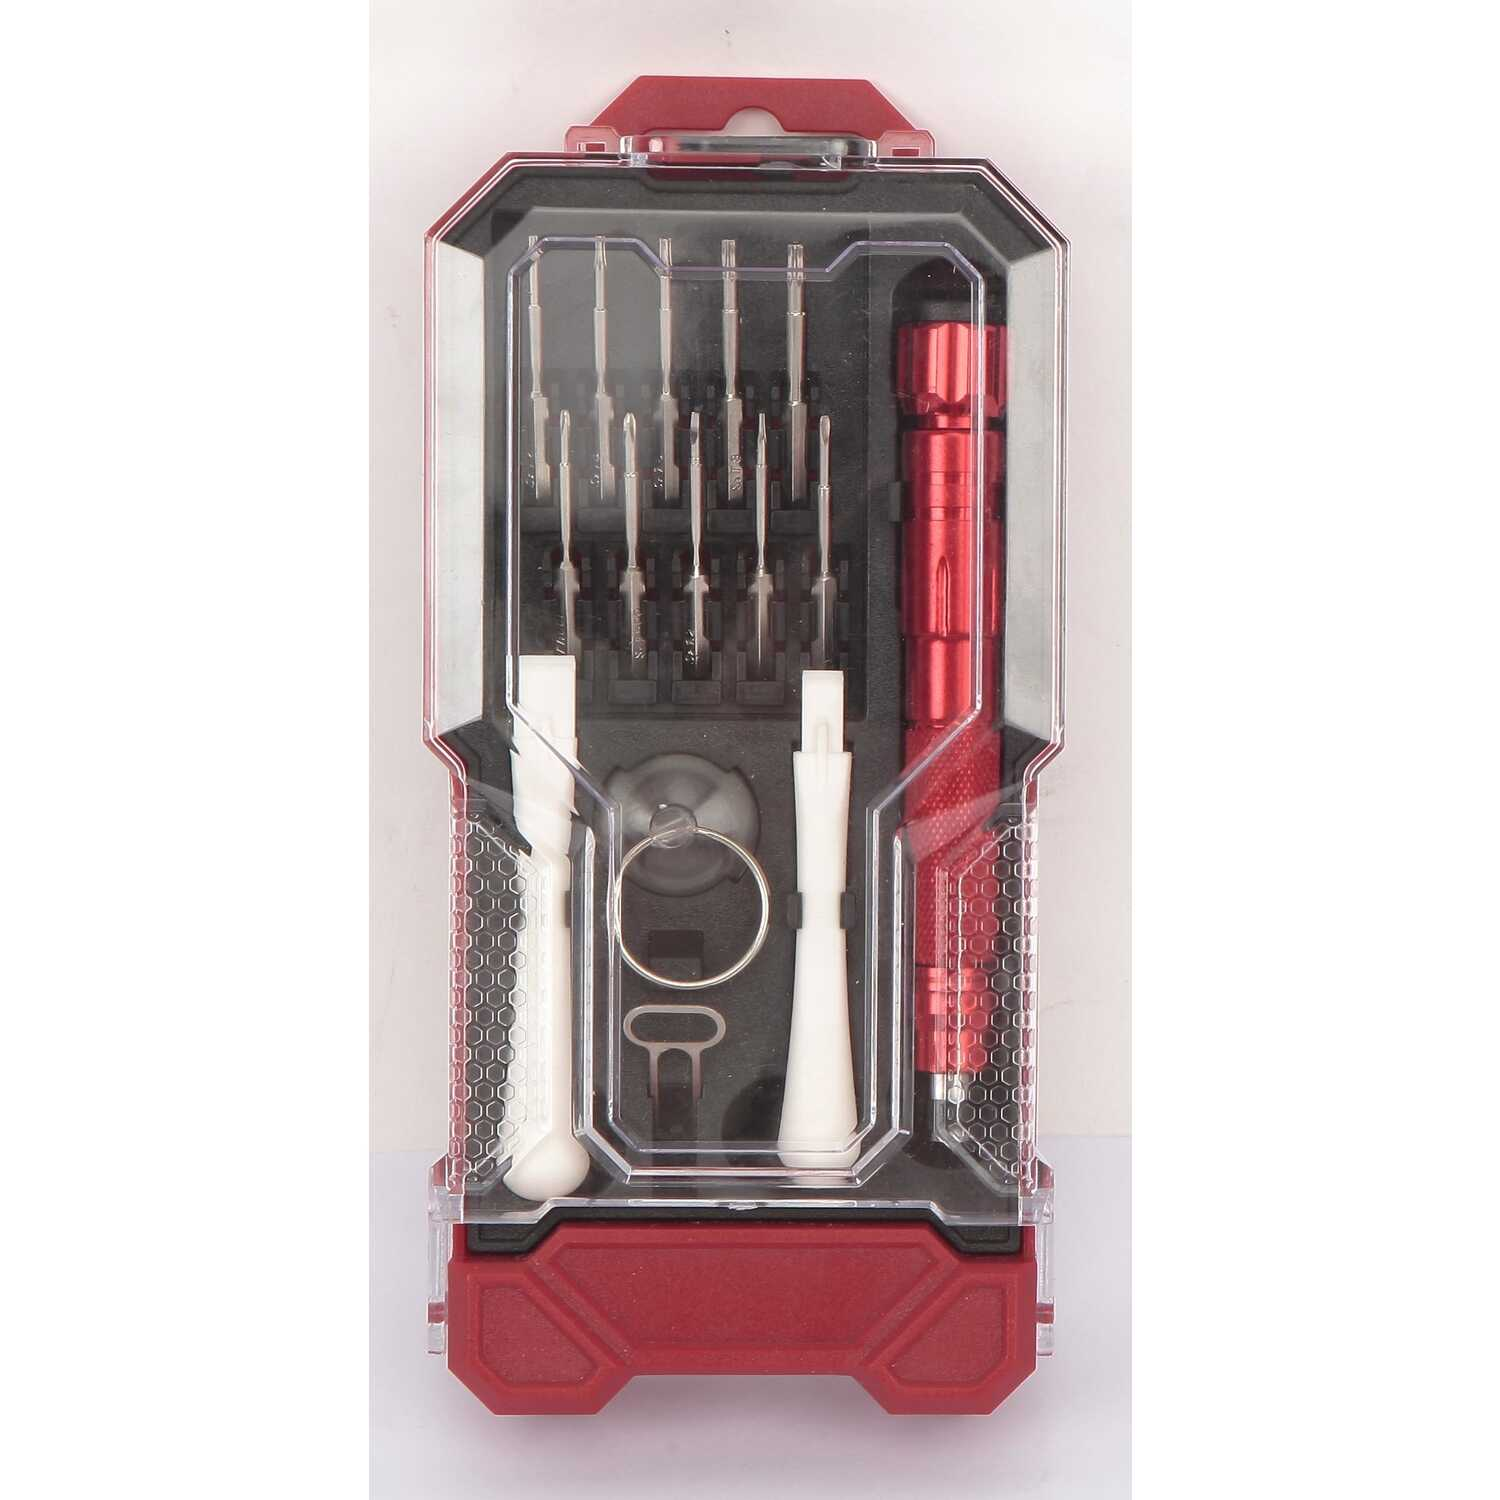 Craftsman  15 pc. Precision Screwdriver Set  8 in. Carbon Steel